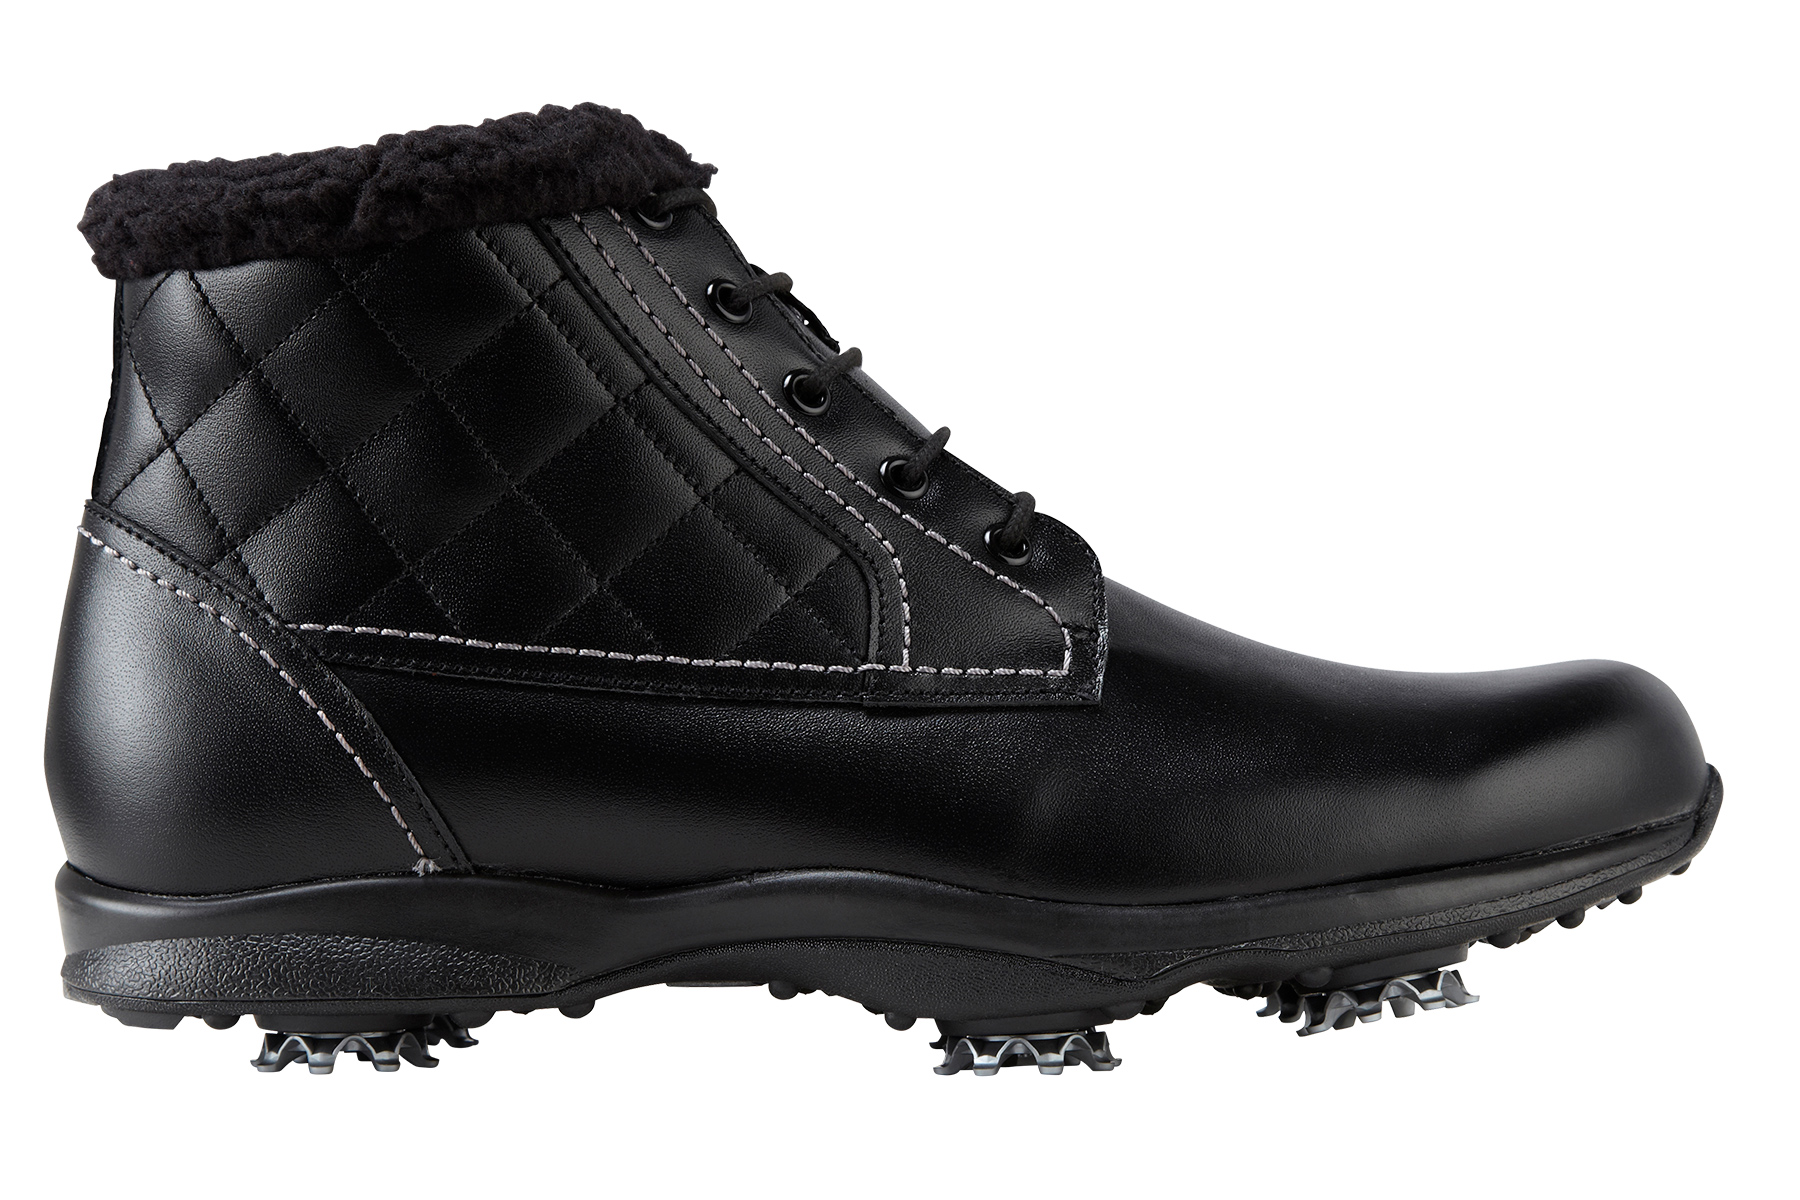 FootJoy Ladies Winter Boots From American Golf